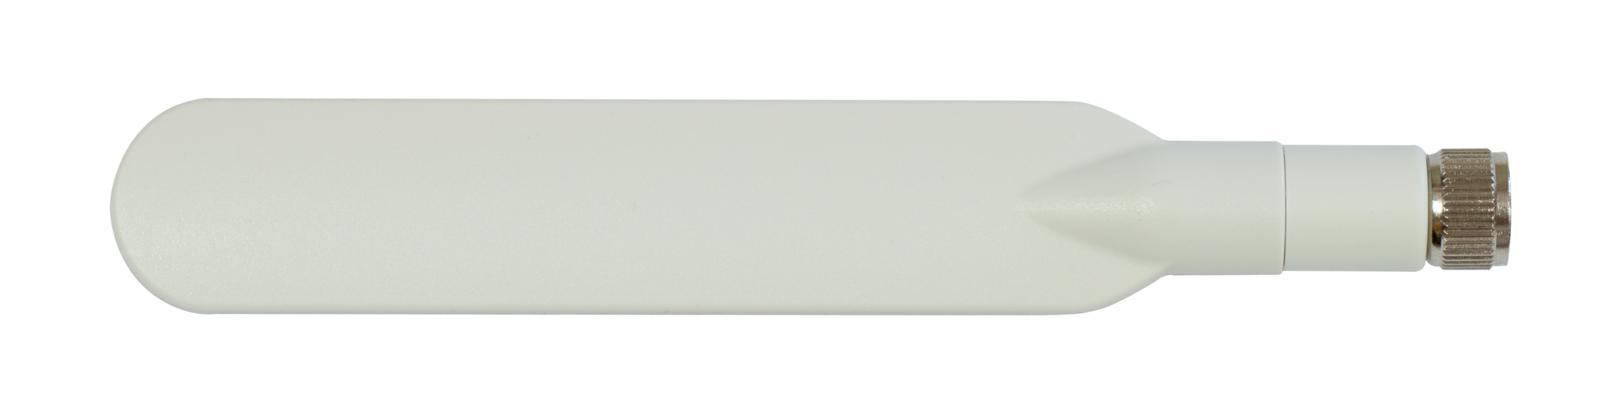 SICE Distributore Ufficiale  Accessories MikroTik 2.4Ghz 5dbi Dipole Antenna with RPSMA connector   ACOMNIRPSMA